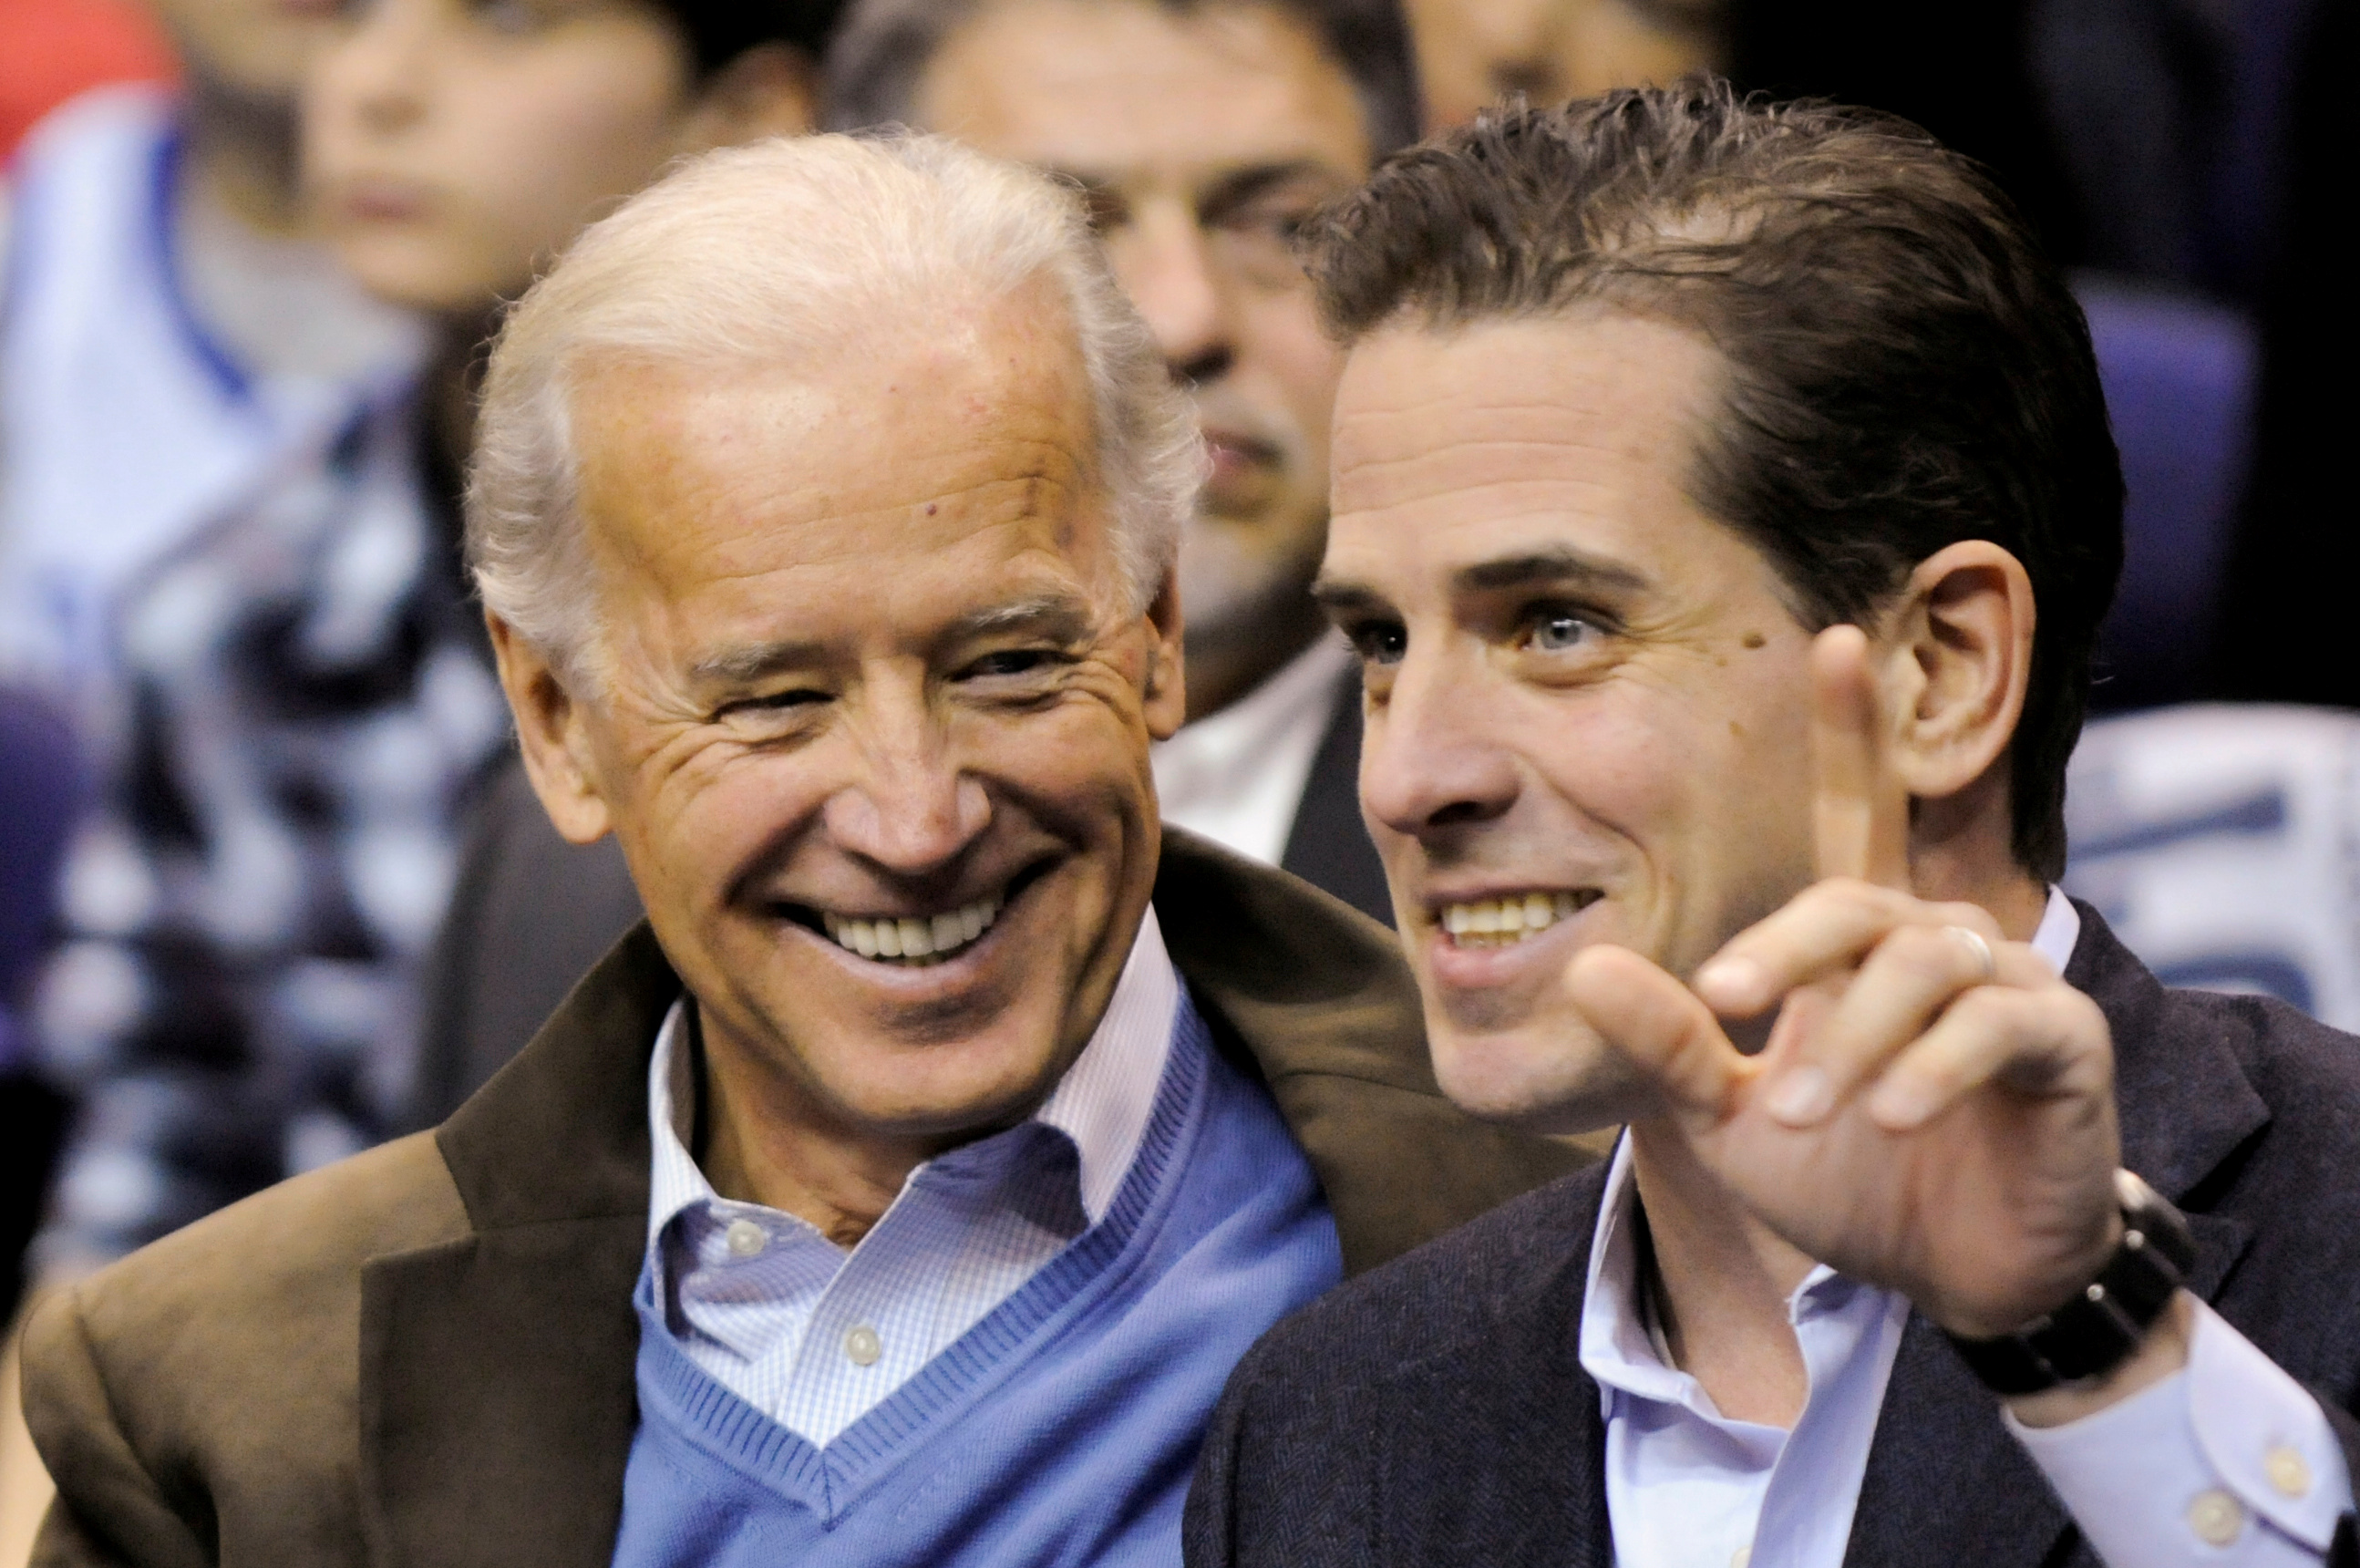 Hunter Biden 'worked as go-between' for Kazakh oligarch with links to Prince Andrew who called ex-VP's son 'my brother'